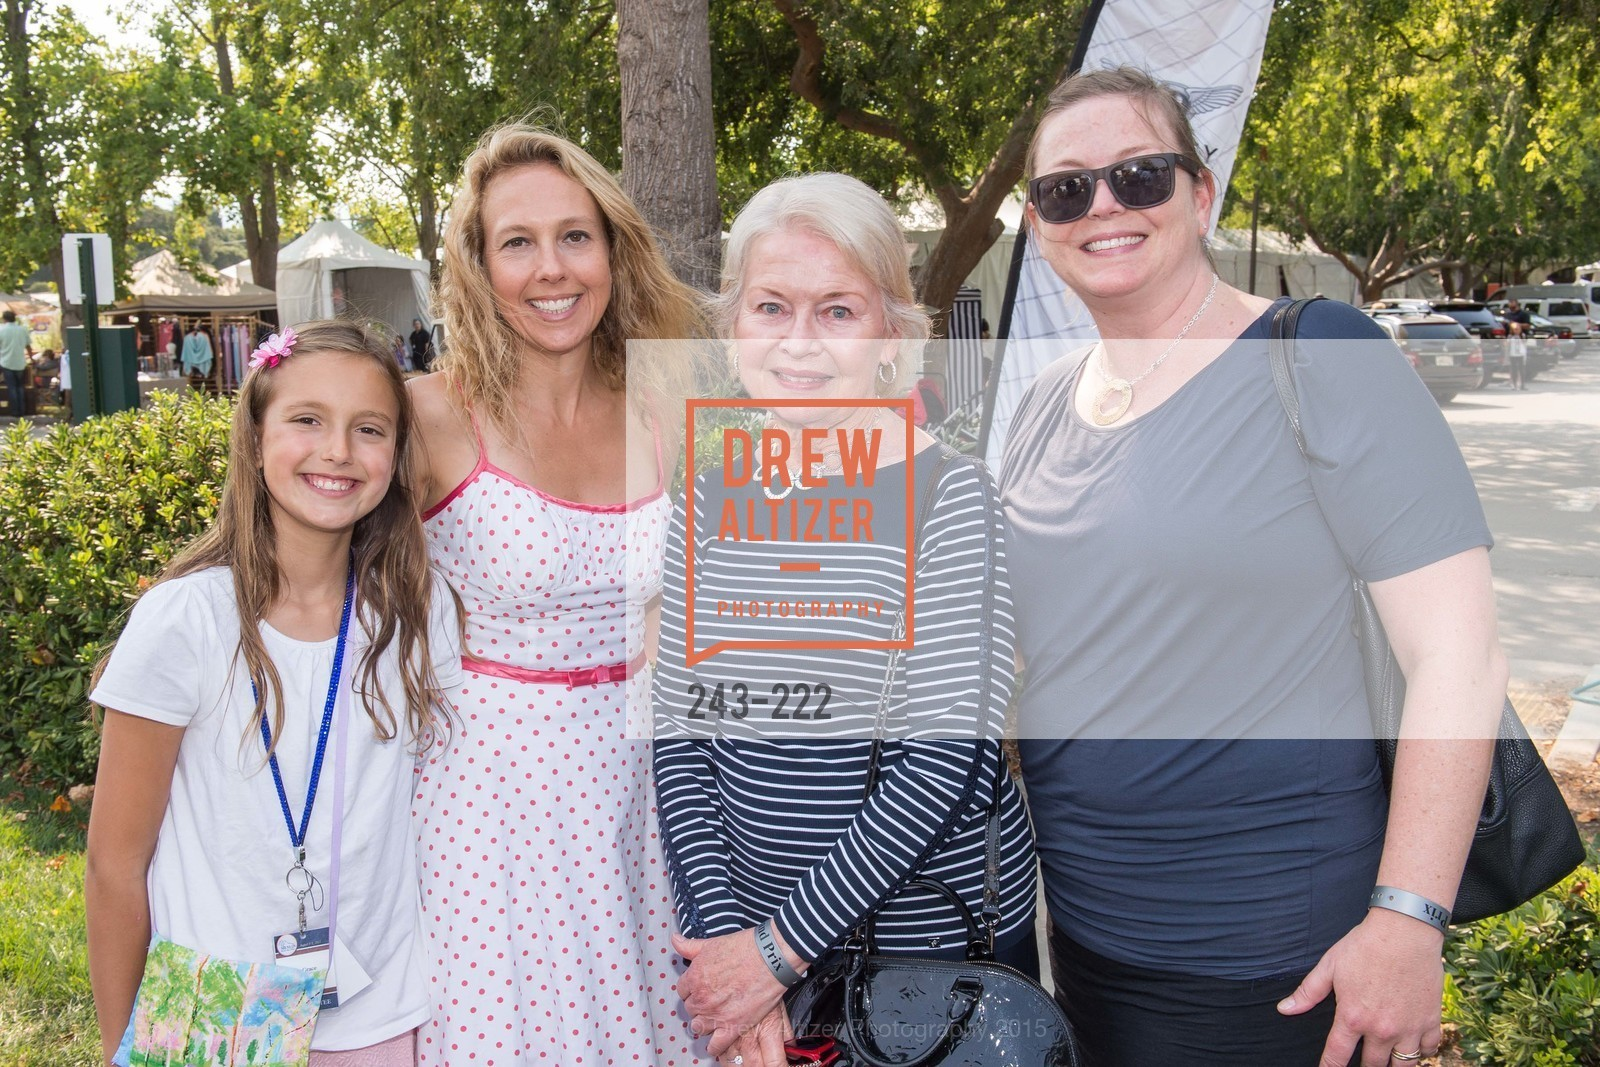 Grace Szalay, Juno Szalay, Pam Brandin, Alexandra Roach, Bentley Tailgate Party Benefiting the Menlo Charity Horse Show, Menlo Circus Club, August 8th, 2015,Drew Altizer, Drew Altizer Photography, full-service agency, private events, San Francisco photographer, photographer california